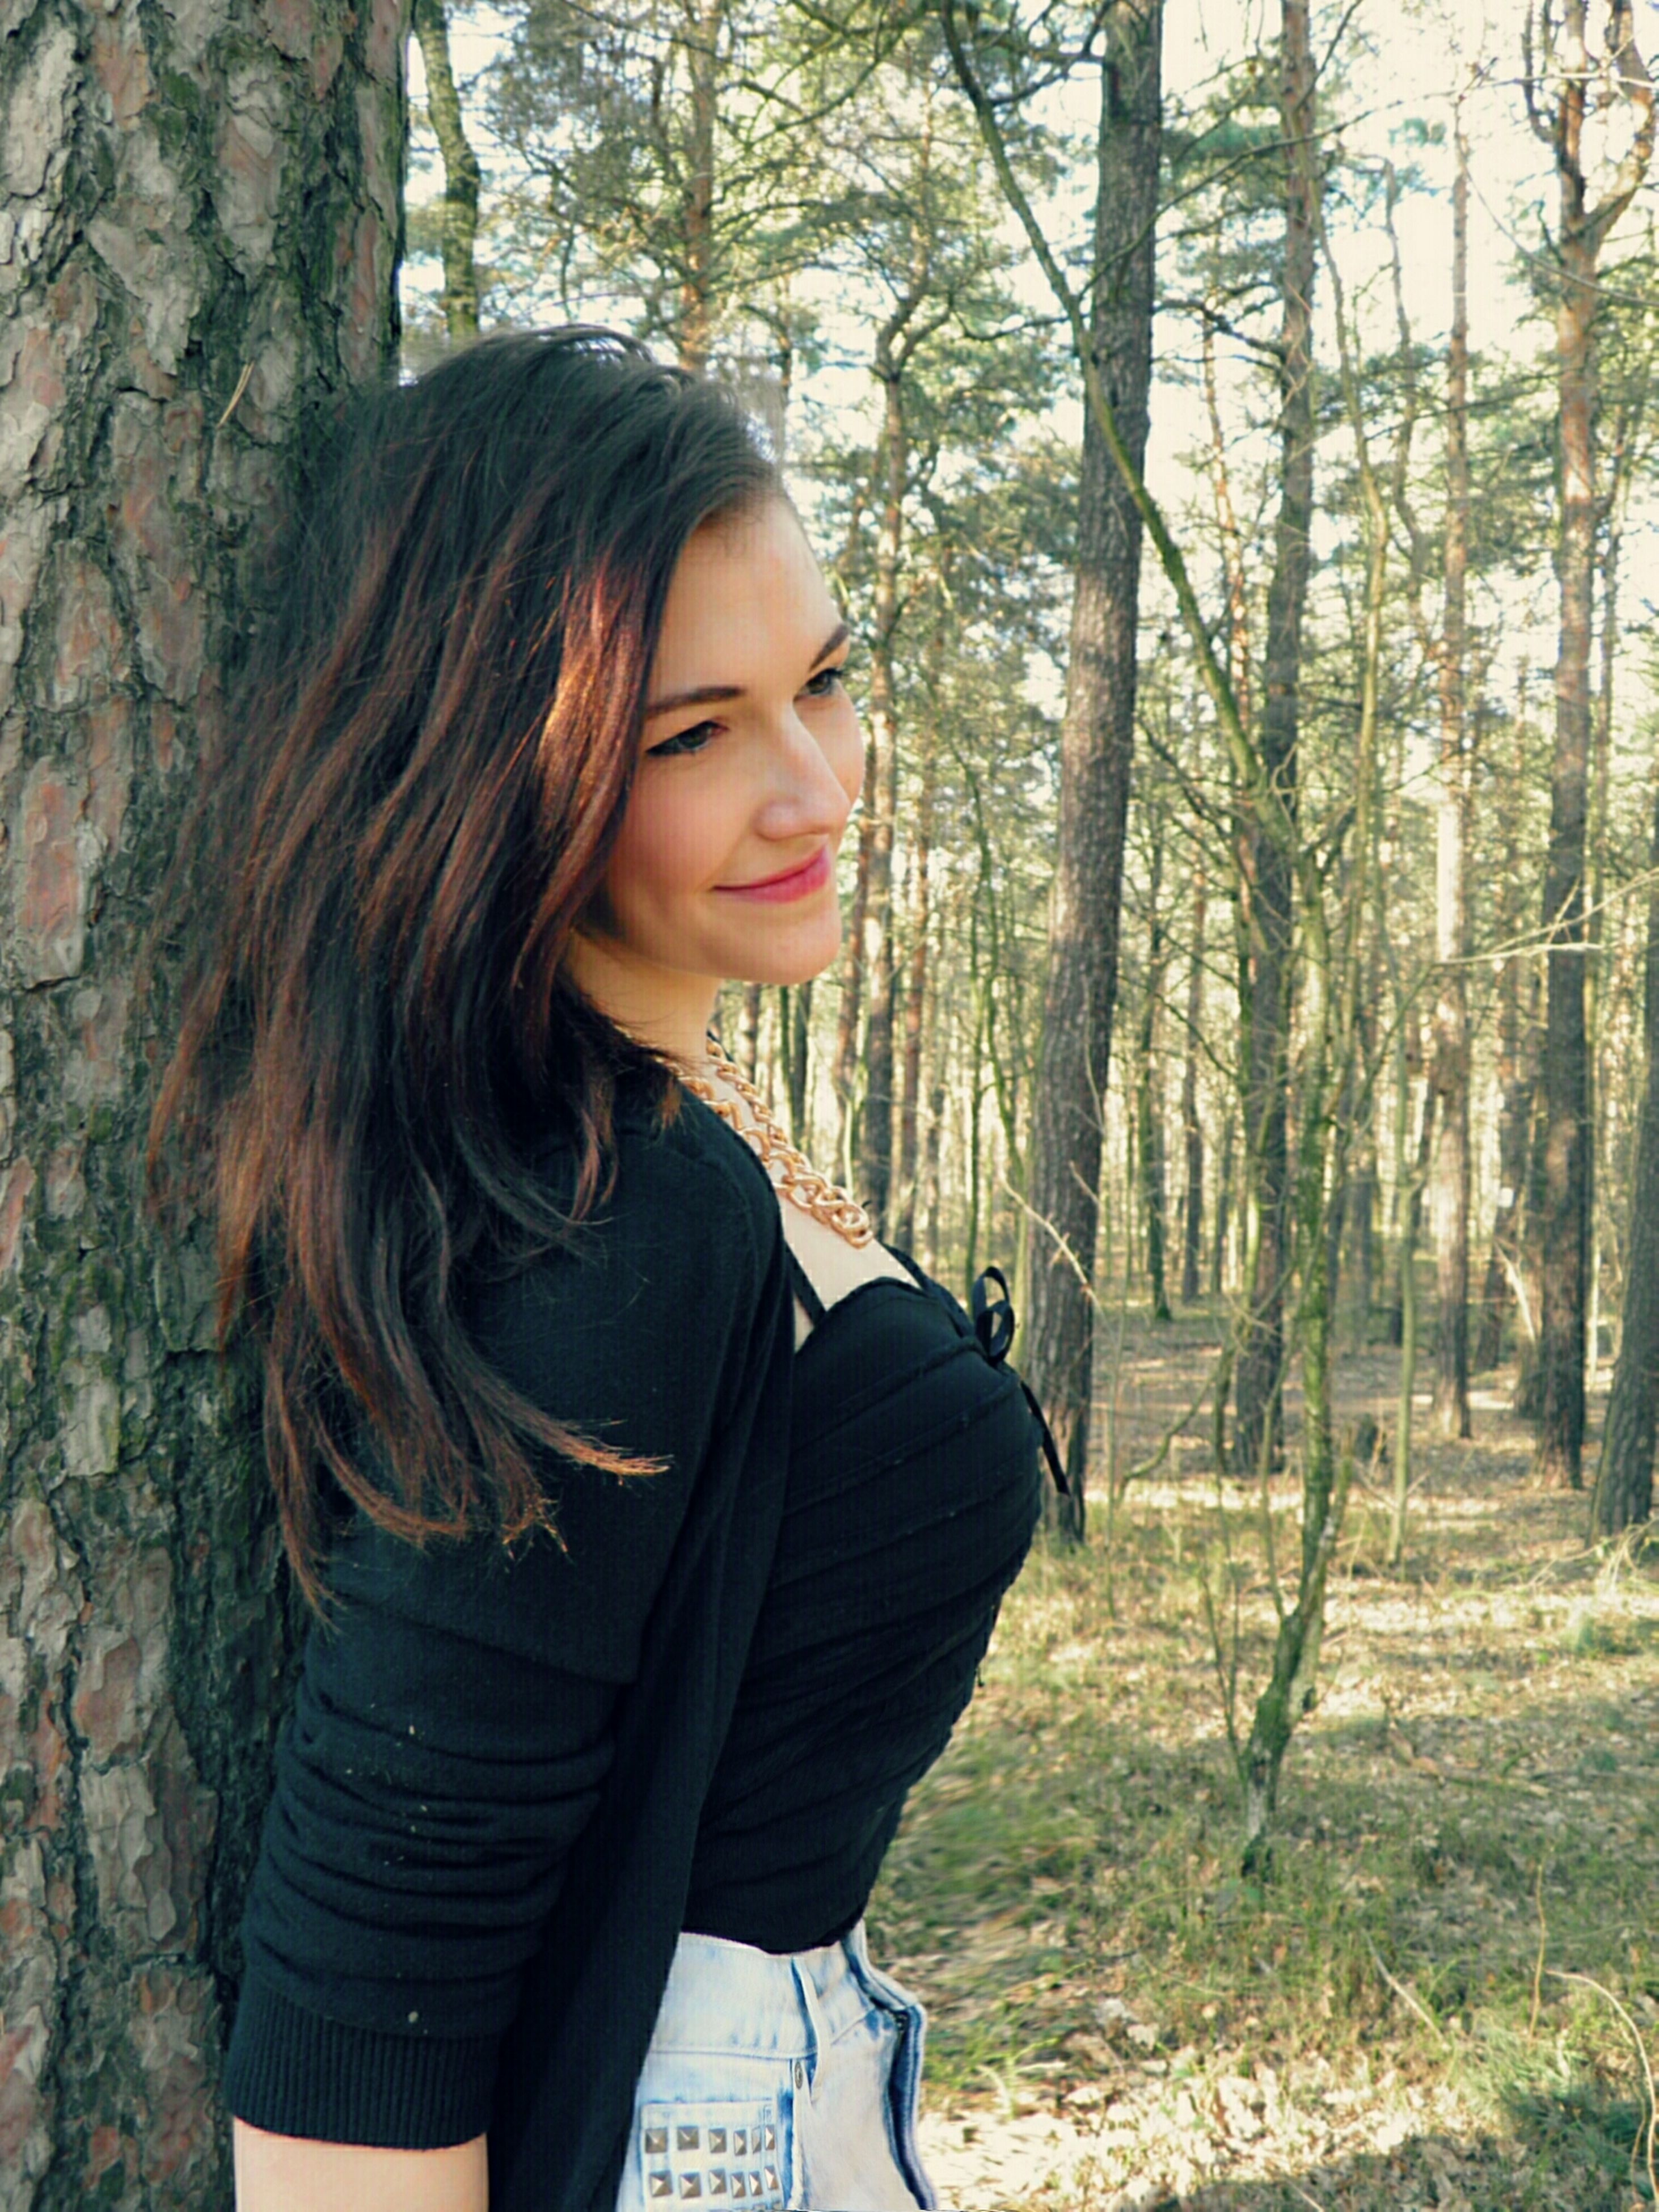 young adult, tree, young women, long hair, person, lifestyles, looking at camera, portrait, casual clothing, leisure activity, forest, front view, tree trunk, standing, focus on foreground, brown hair, smiling